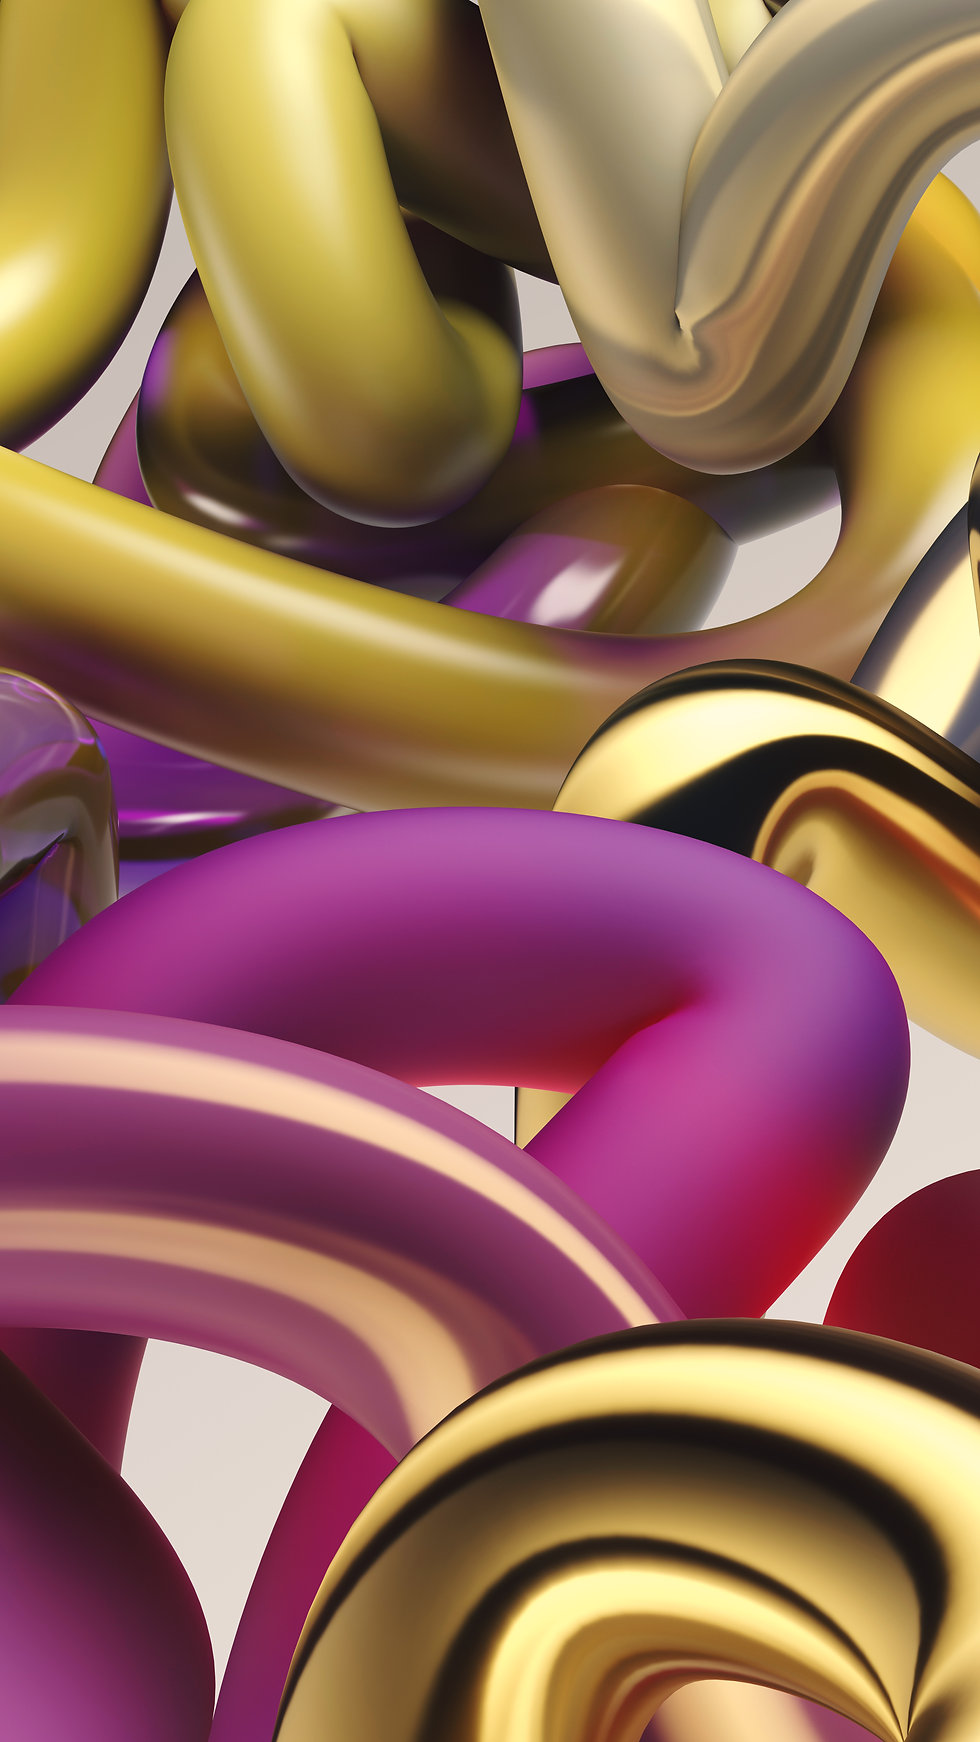 A tangle of pipes made of a matte and shiny materials